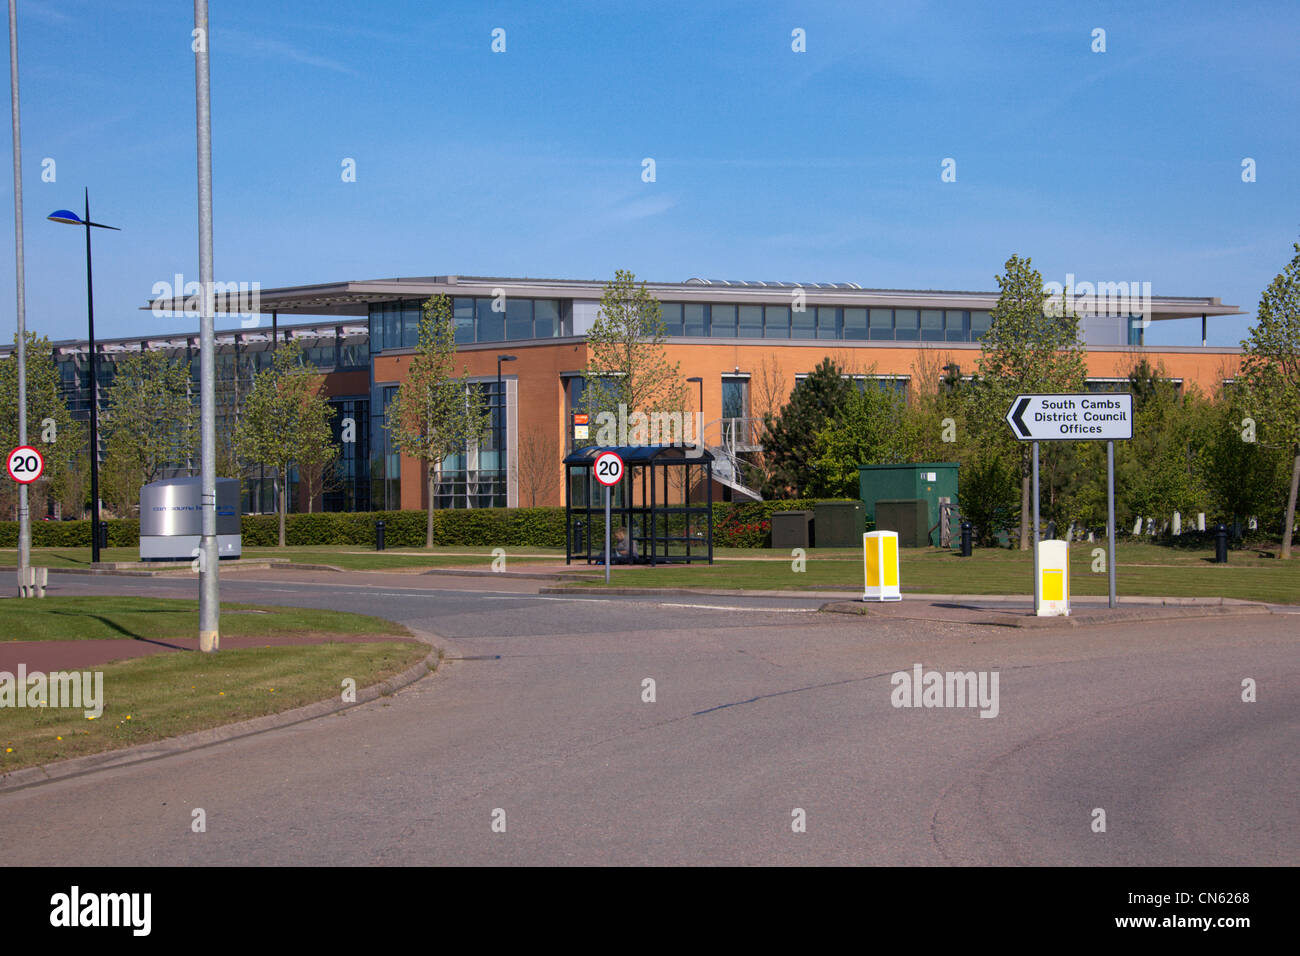 South Cambs District Council offices Great Cambourne Cambridgeshire England - Stock Image